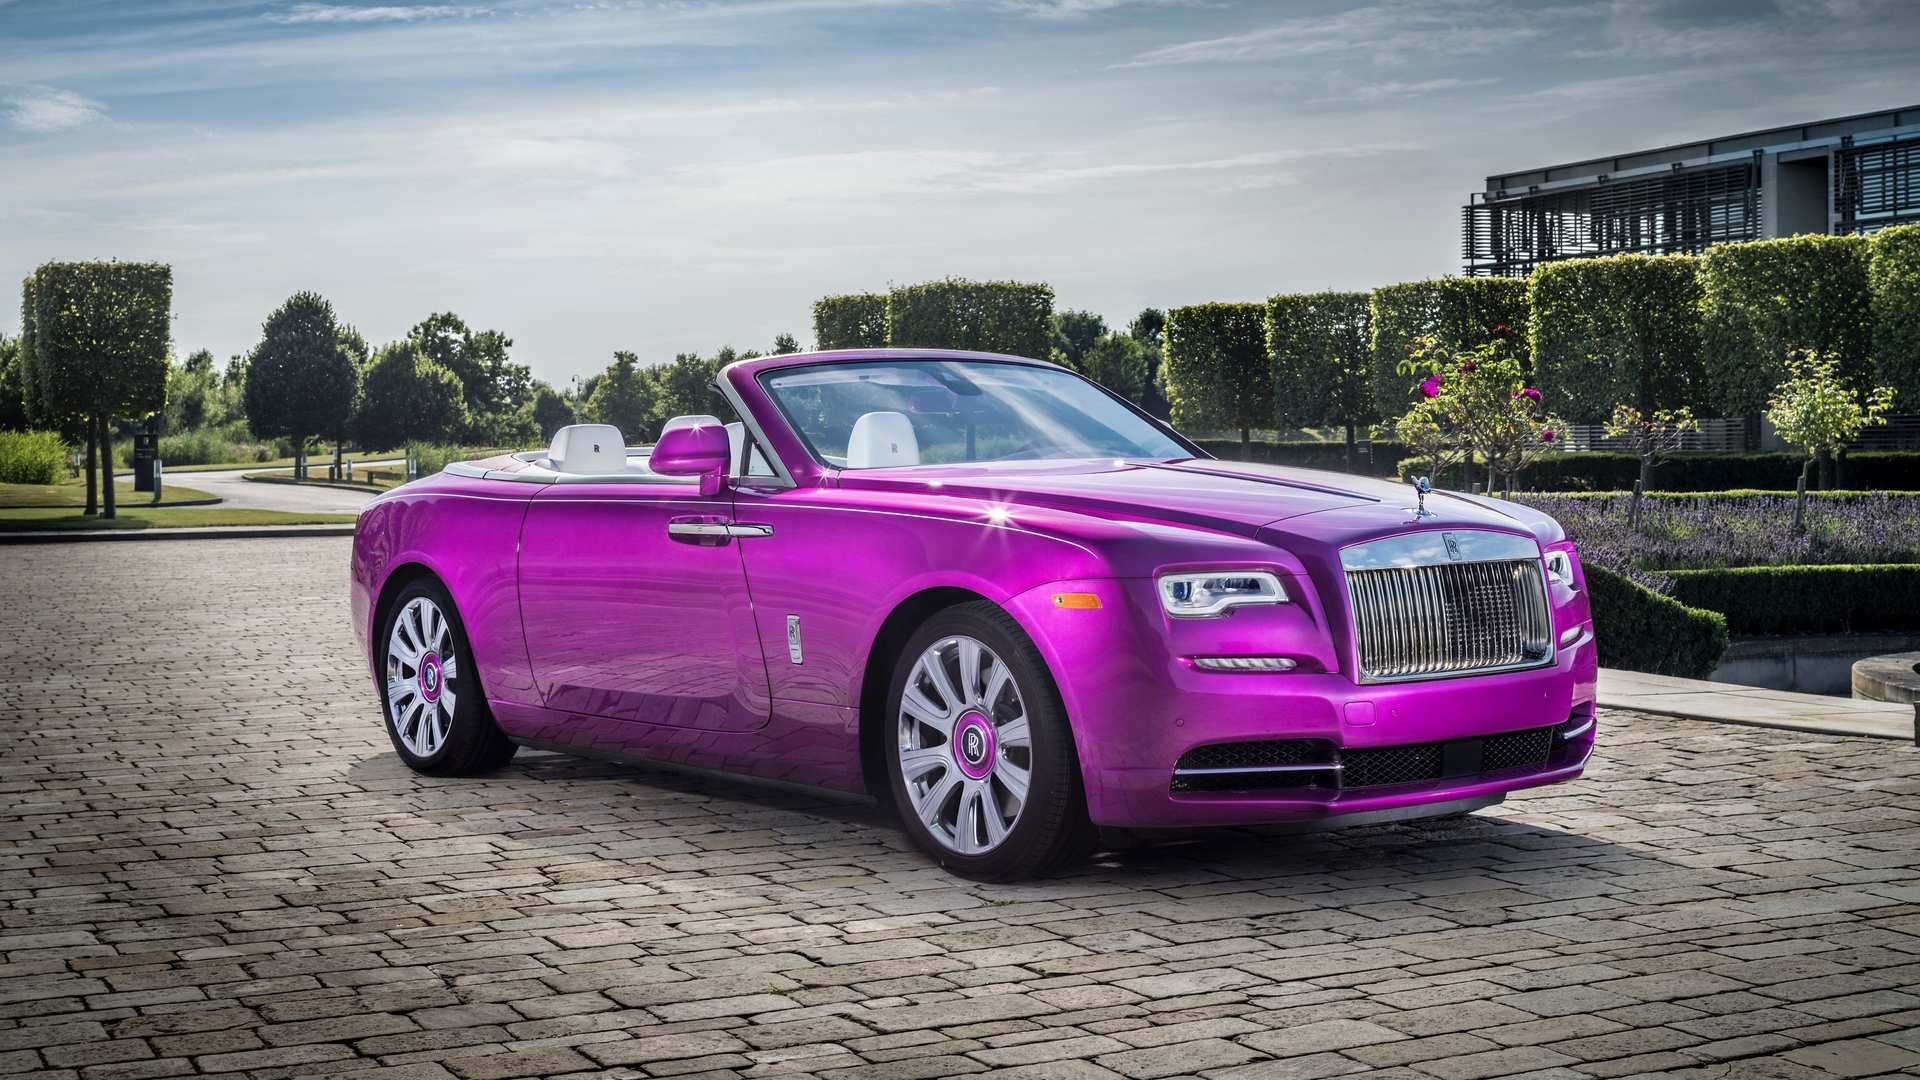 An electric fuchsia Rolls-Royce Dawn convertible is parked in front of sculptural hedges and trees in the parking lot of Goodwood, the Home of Rolls-Royce